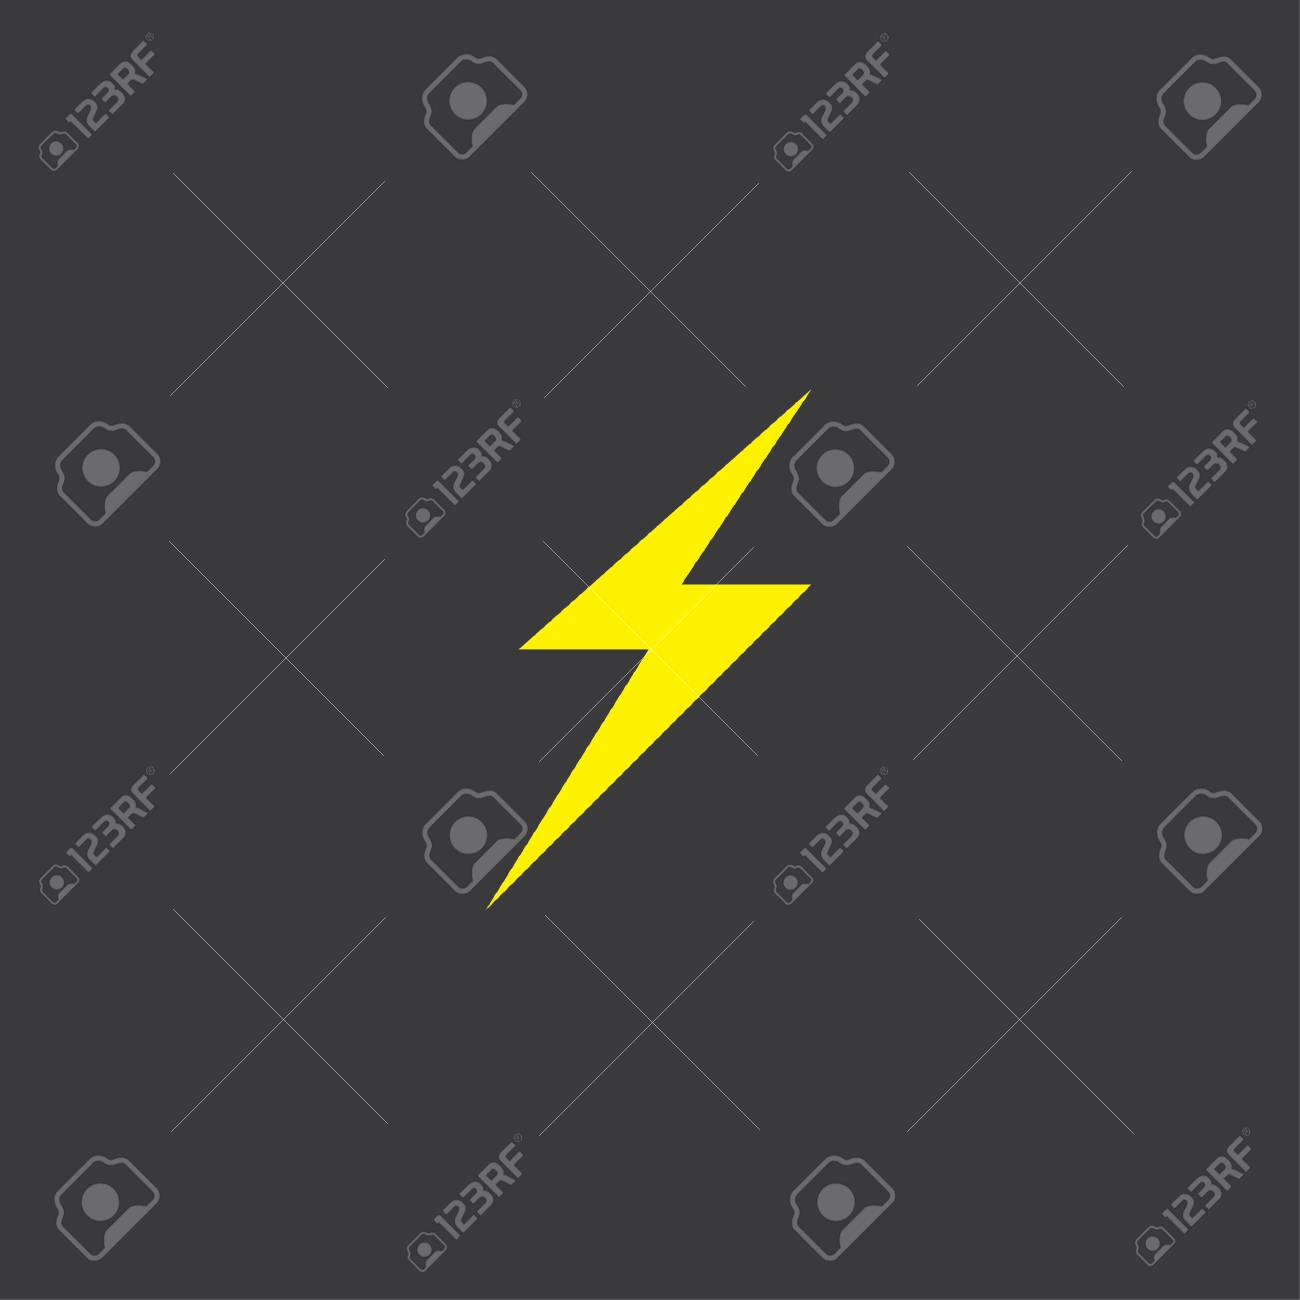 A Yellow Icon Isolated On A Grey Background Lightning Bolt Stock Photo Picture And Royalty Free Image Image 45611228